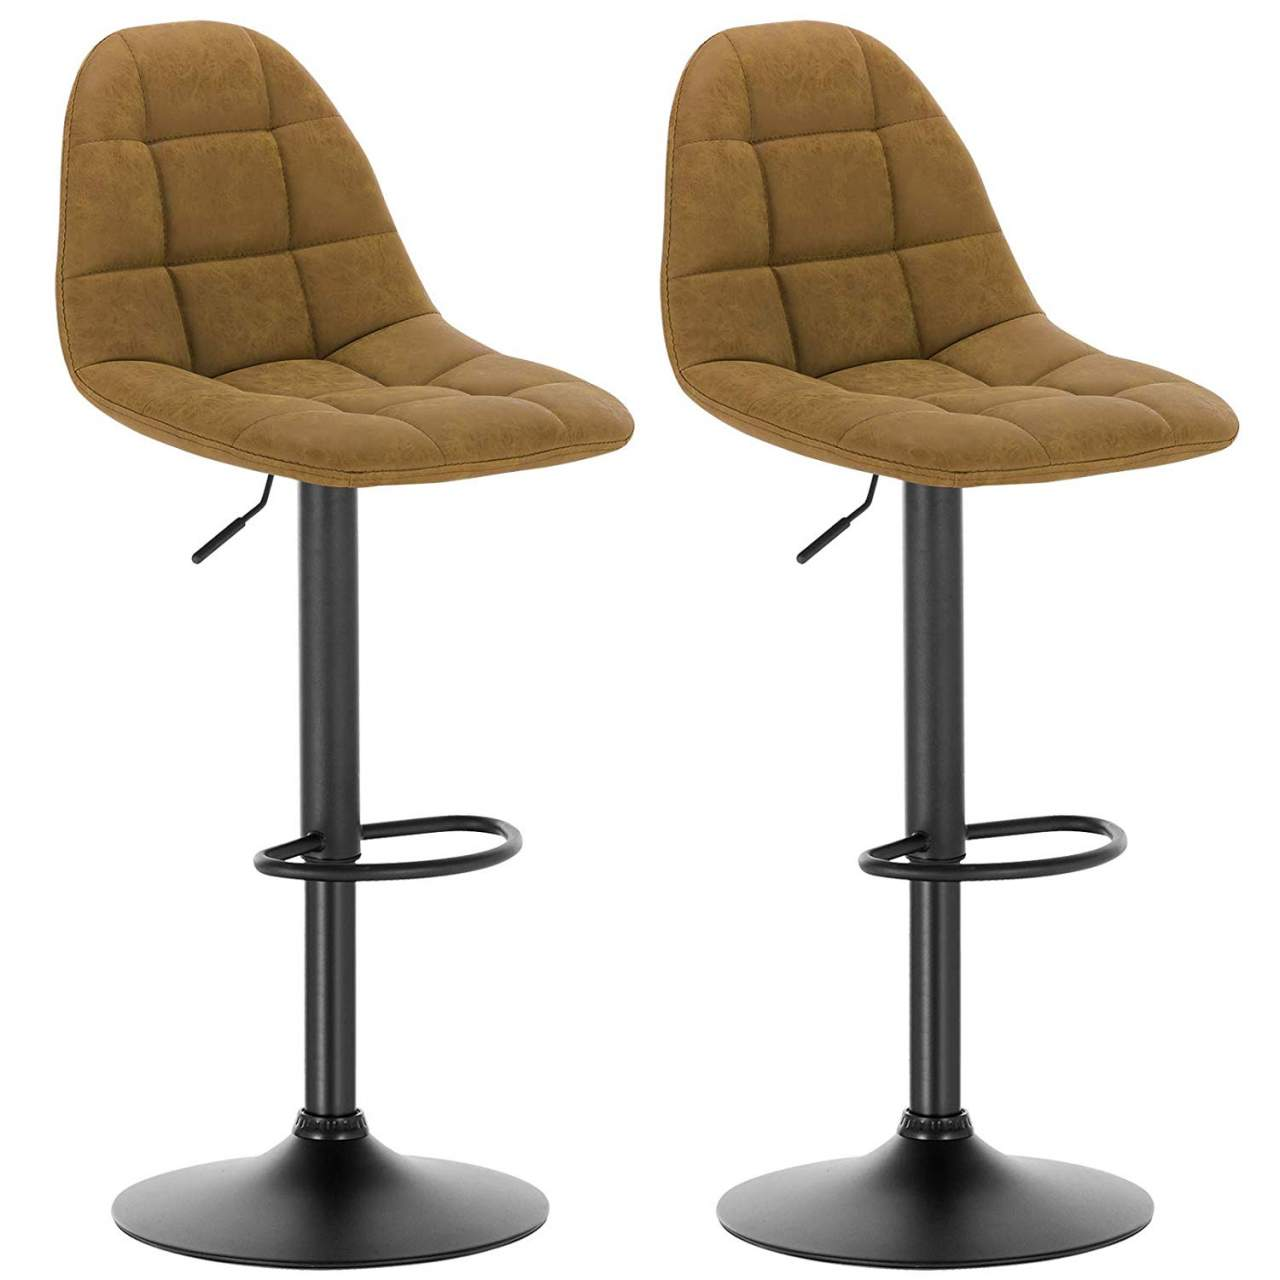 Leatherette bar stools with backrests 2pcs set in brown